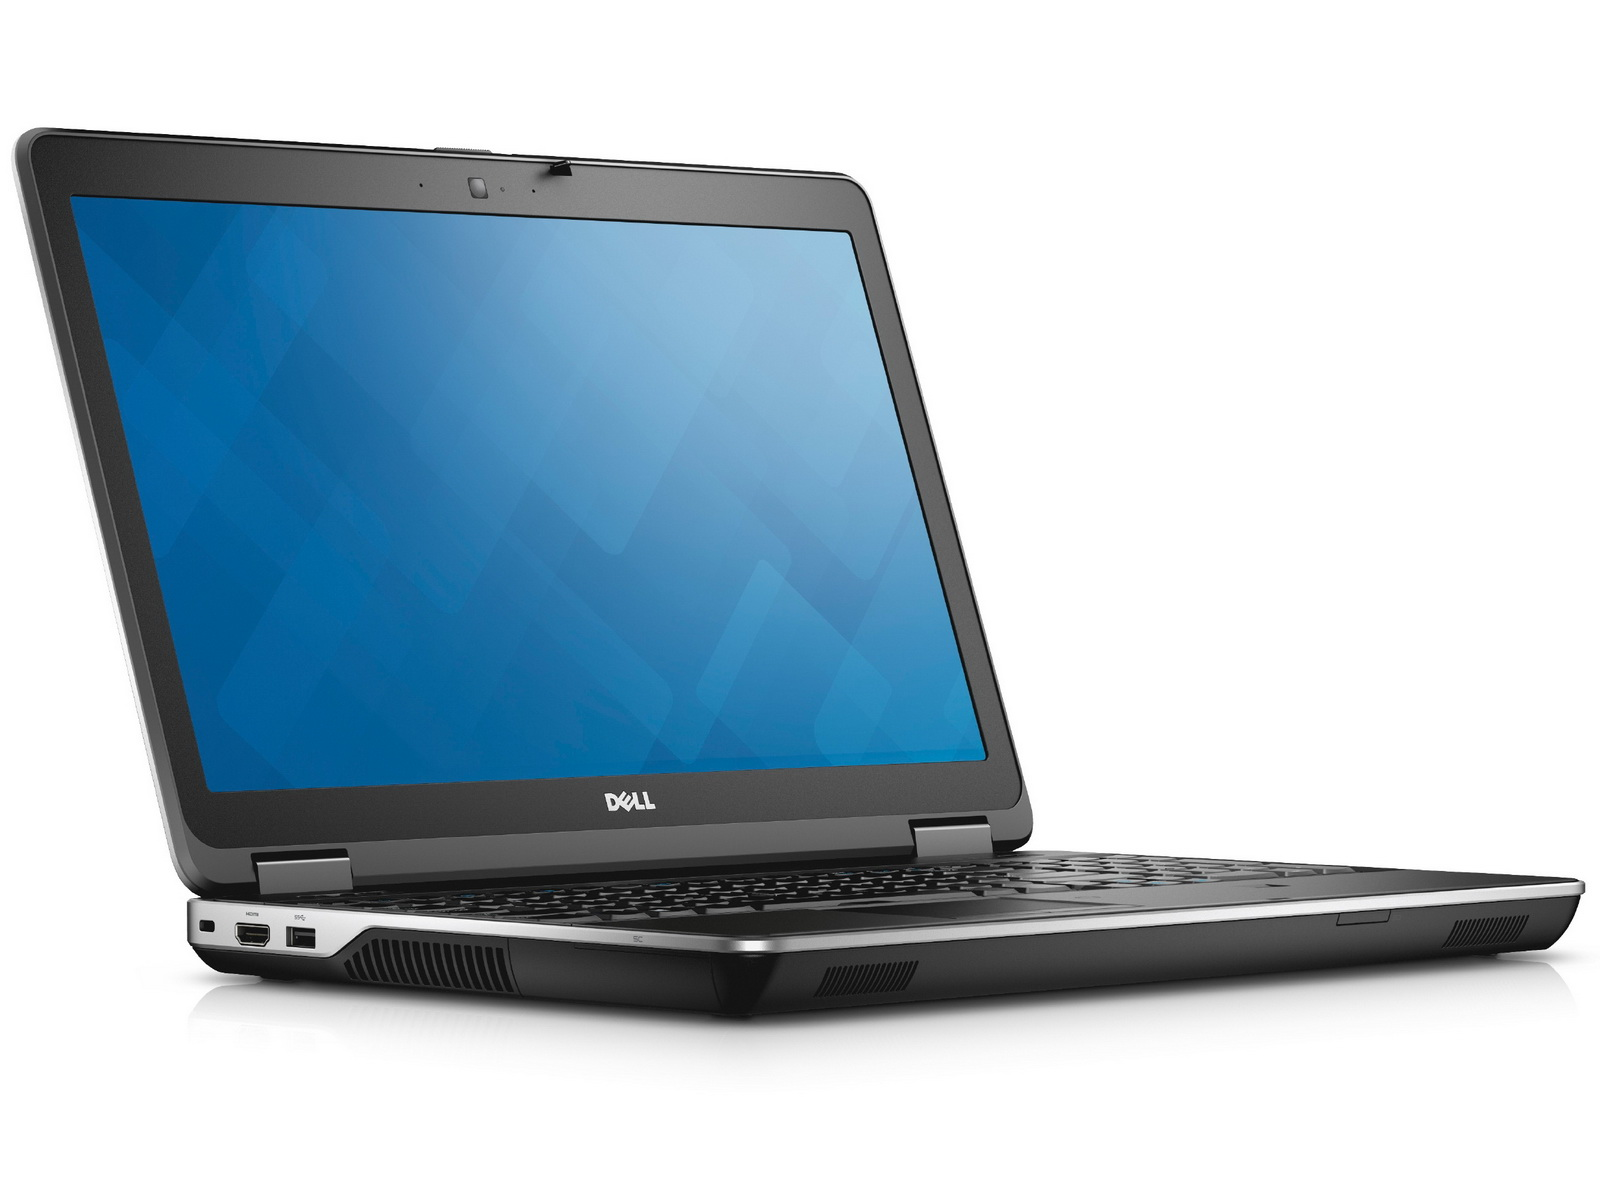 Dell Latitude E6540 - Core I7-4810MQ